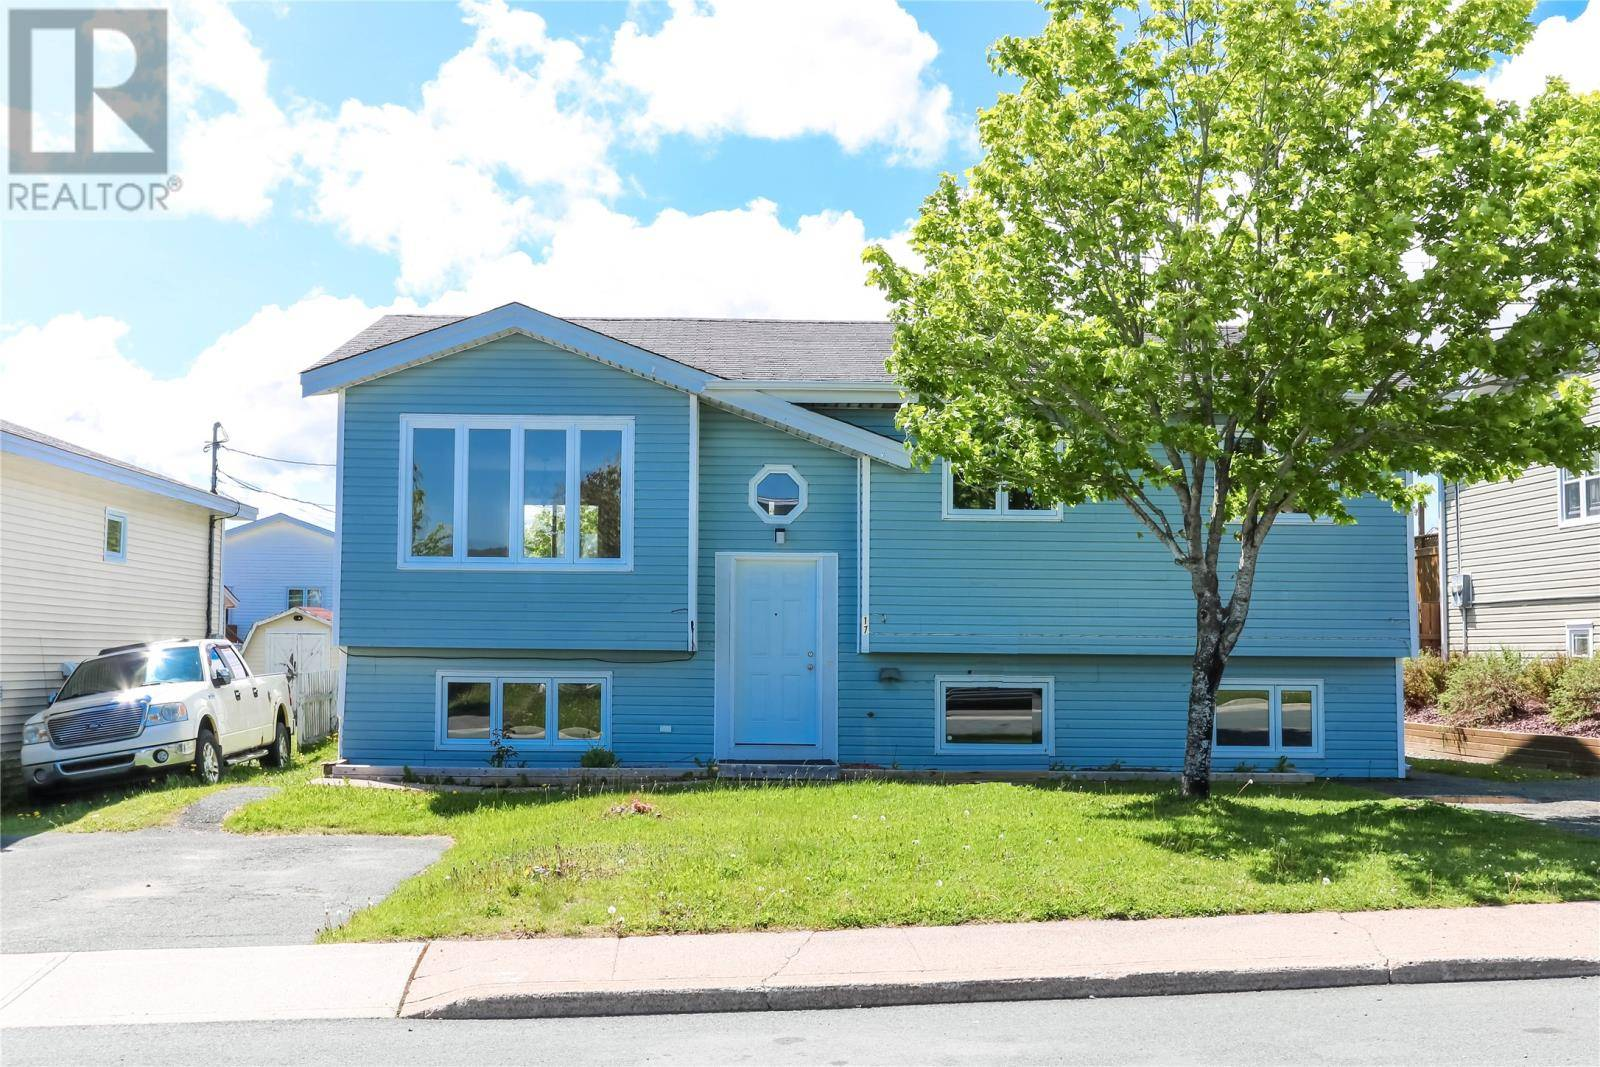 House for sale at 17 Gary Dr St. John's Newfoundland - MLS: 1207639